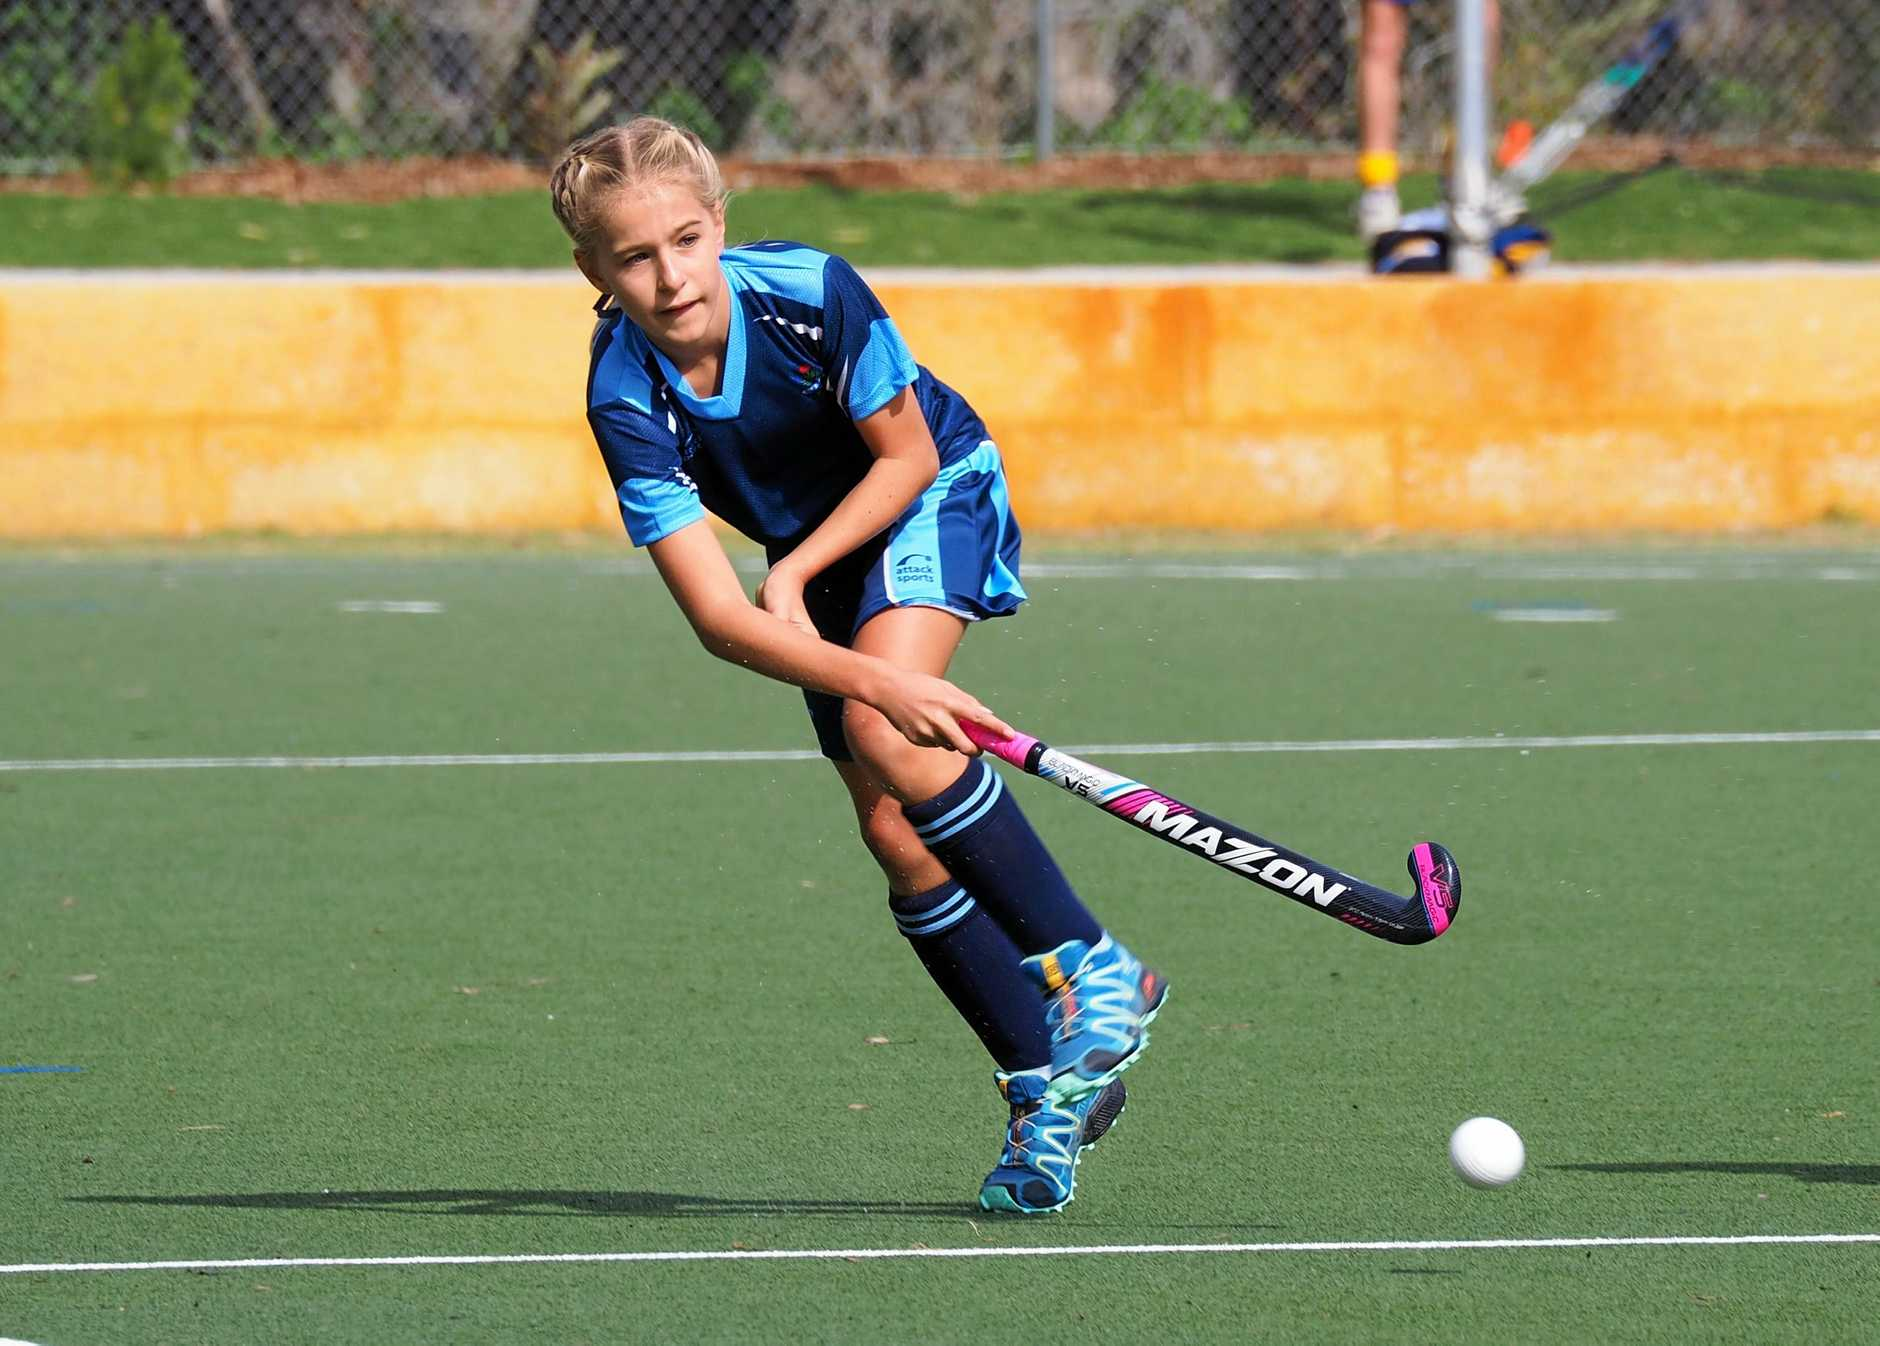 Coffs Harbour hockey player Hayley Fischer in action for NSW at the PSSA national championships.